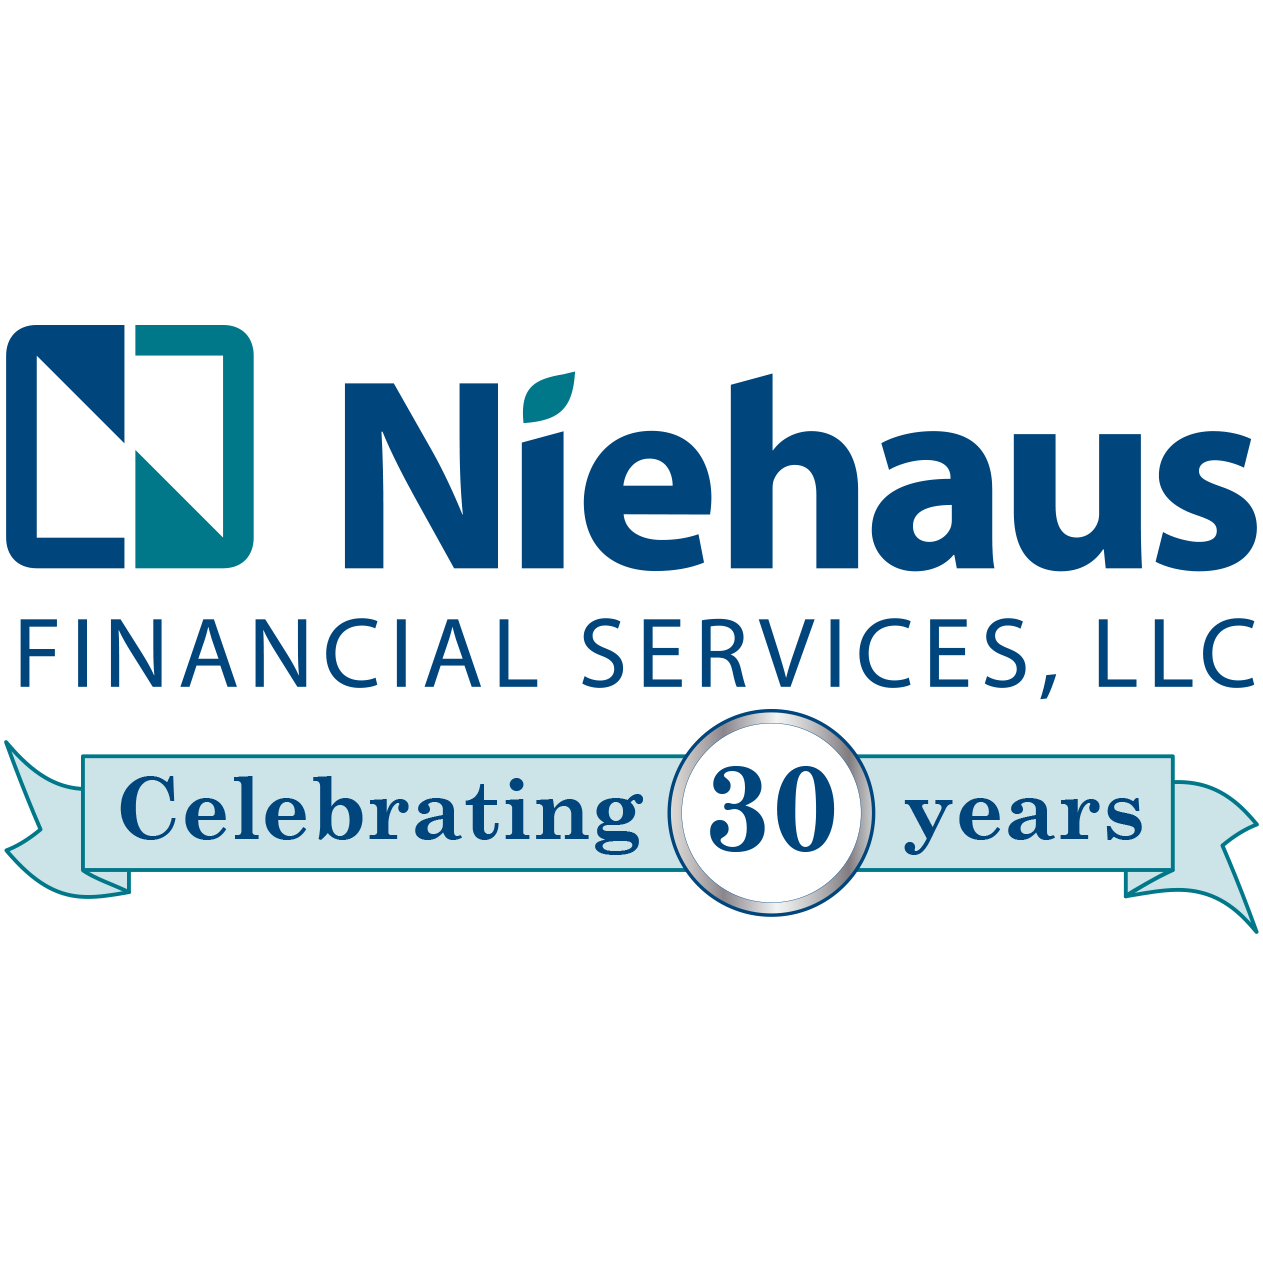 Niehaus Financial Services, LLC